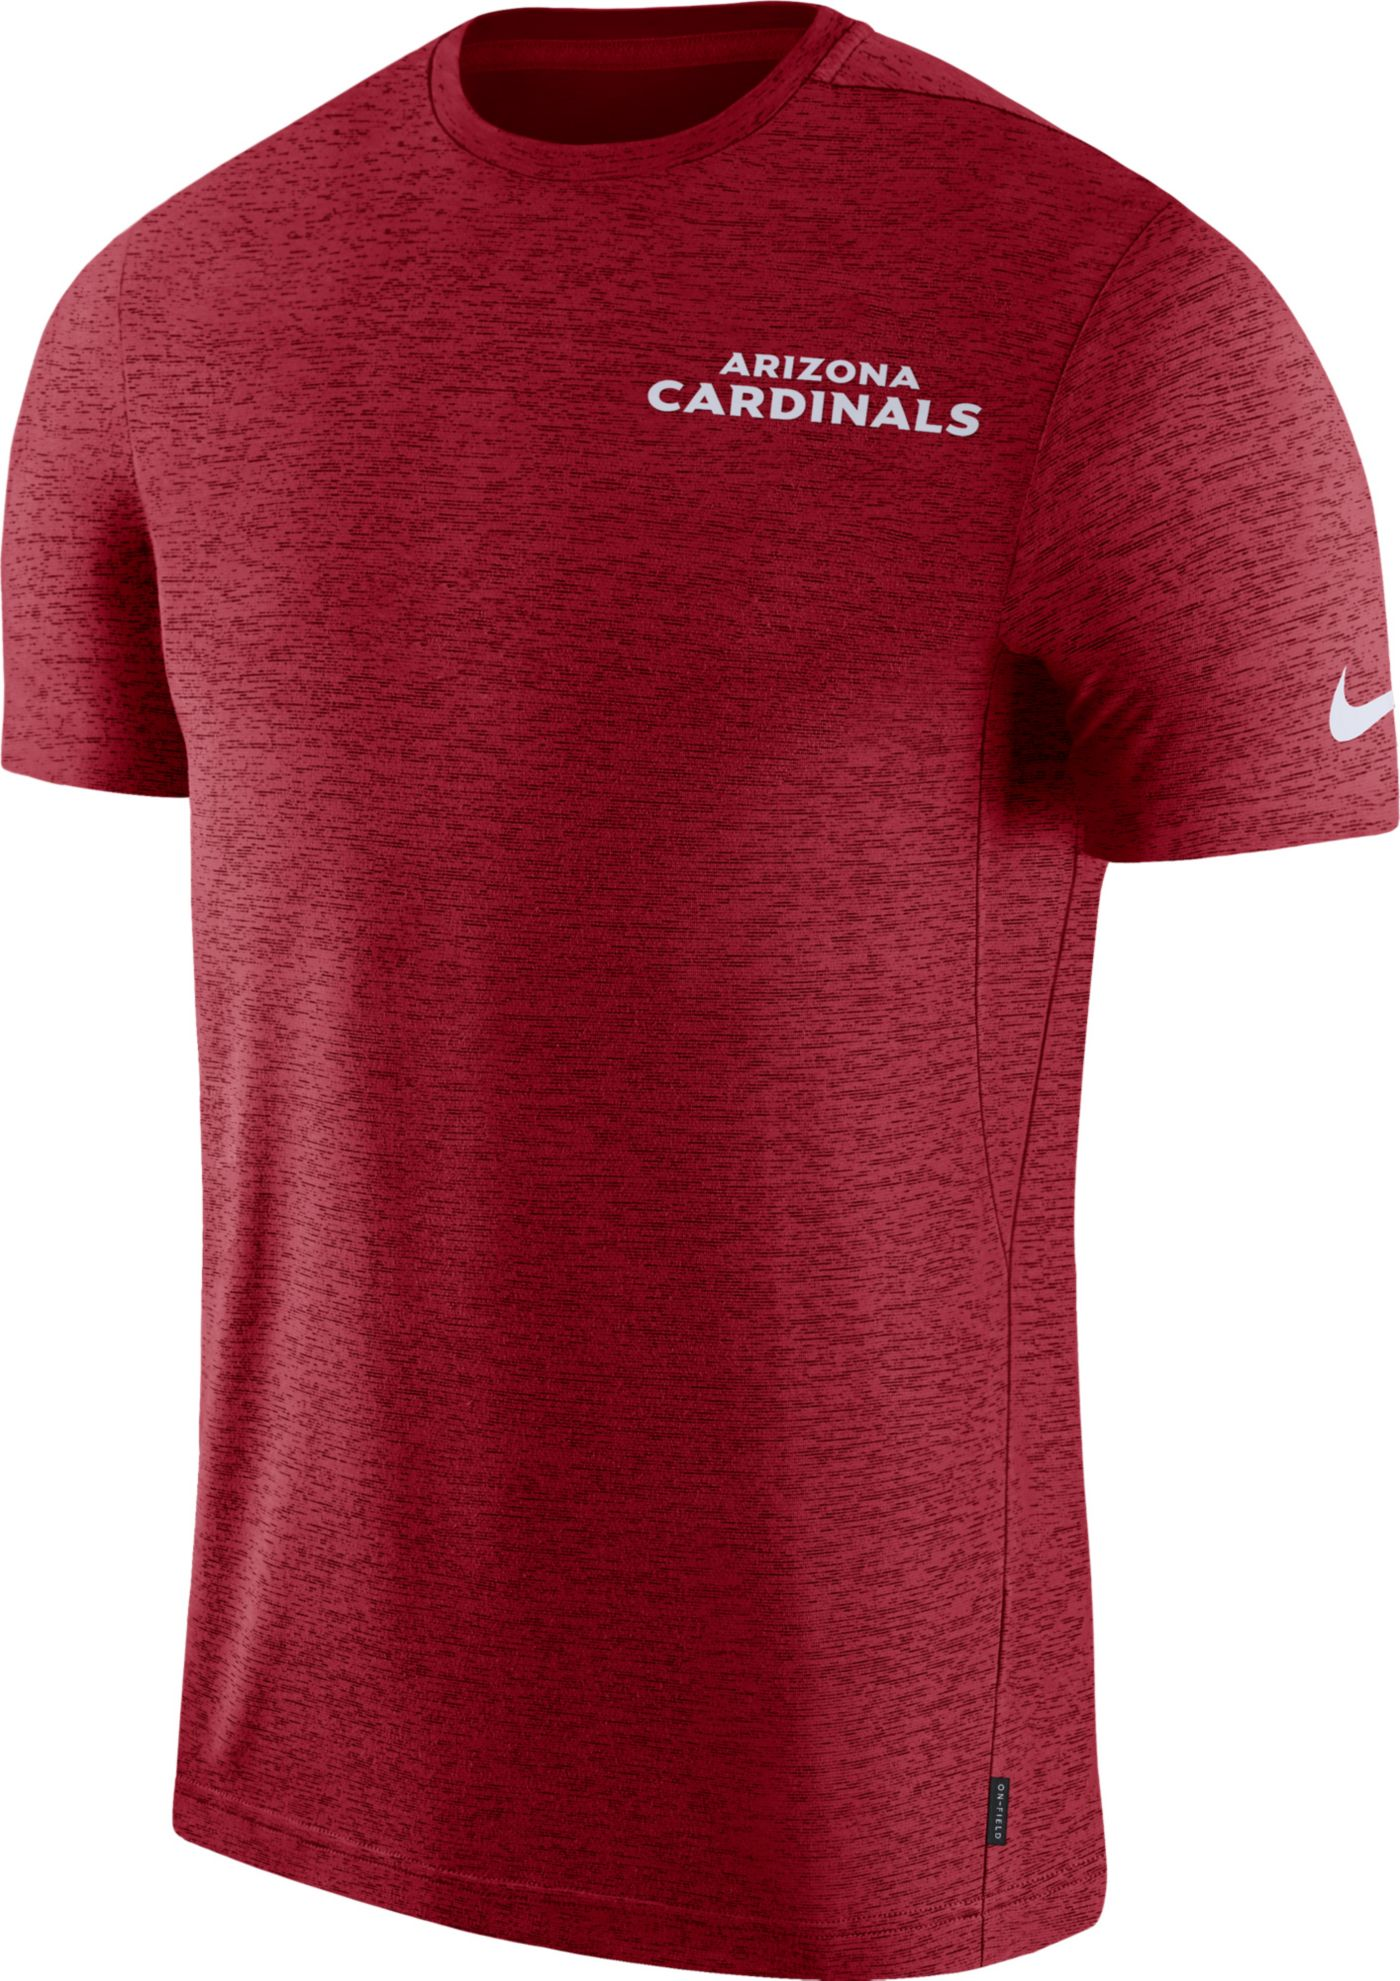 Nike Men's Arizona Cardinals Sideline Coach Performance Red T-Shirt